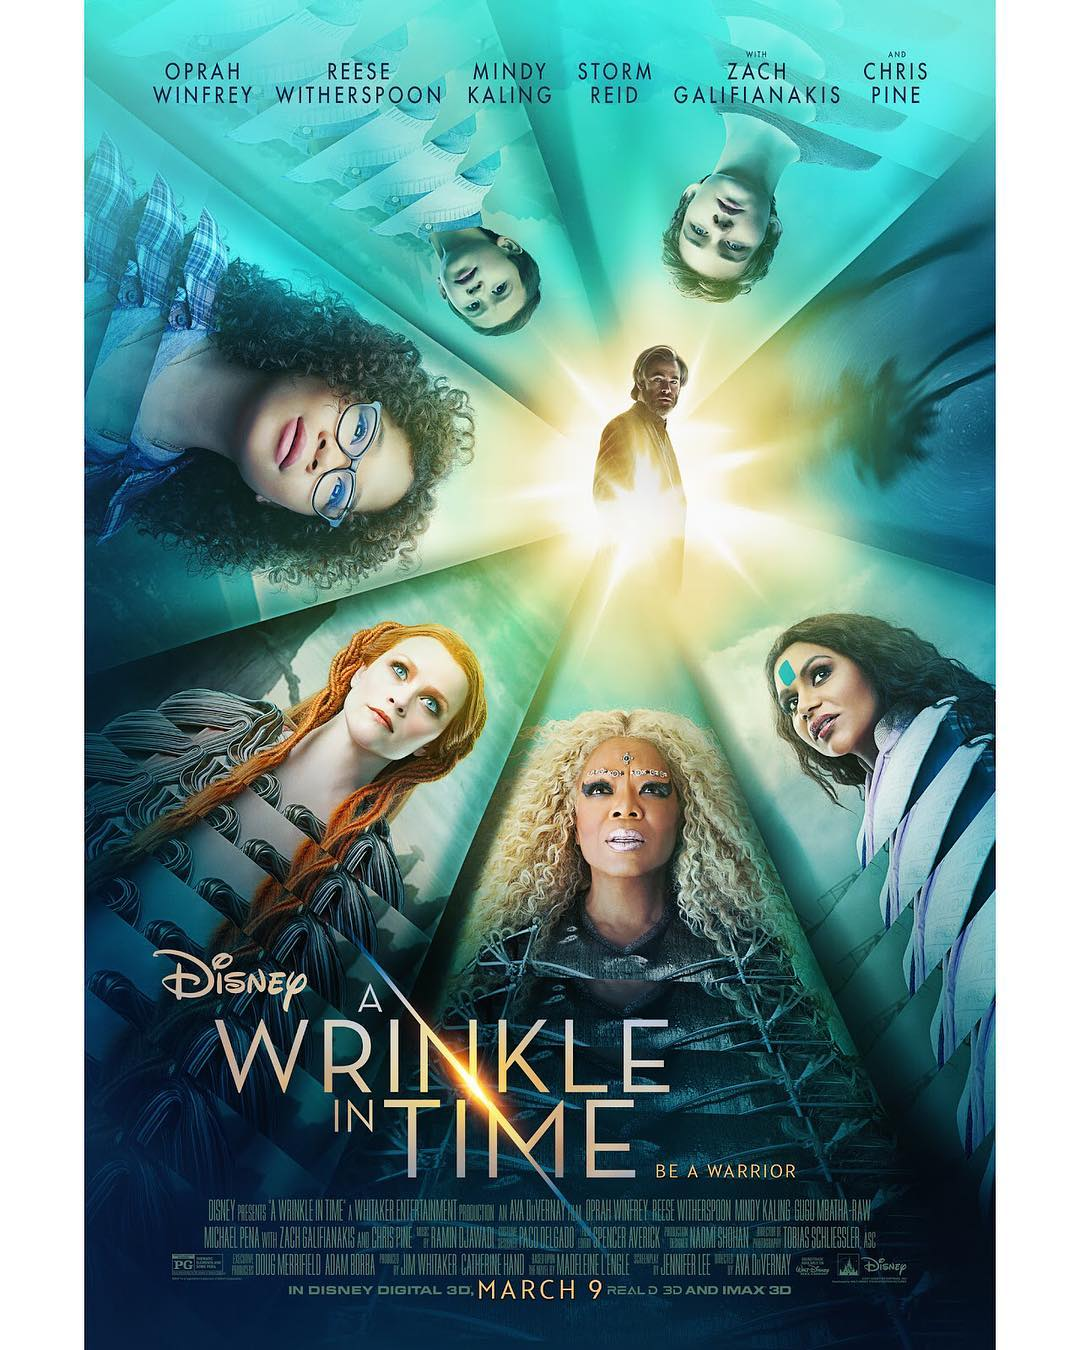 Meg Murry Quotes From A Wrinkle In Time: A Visual And Colorful Painting